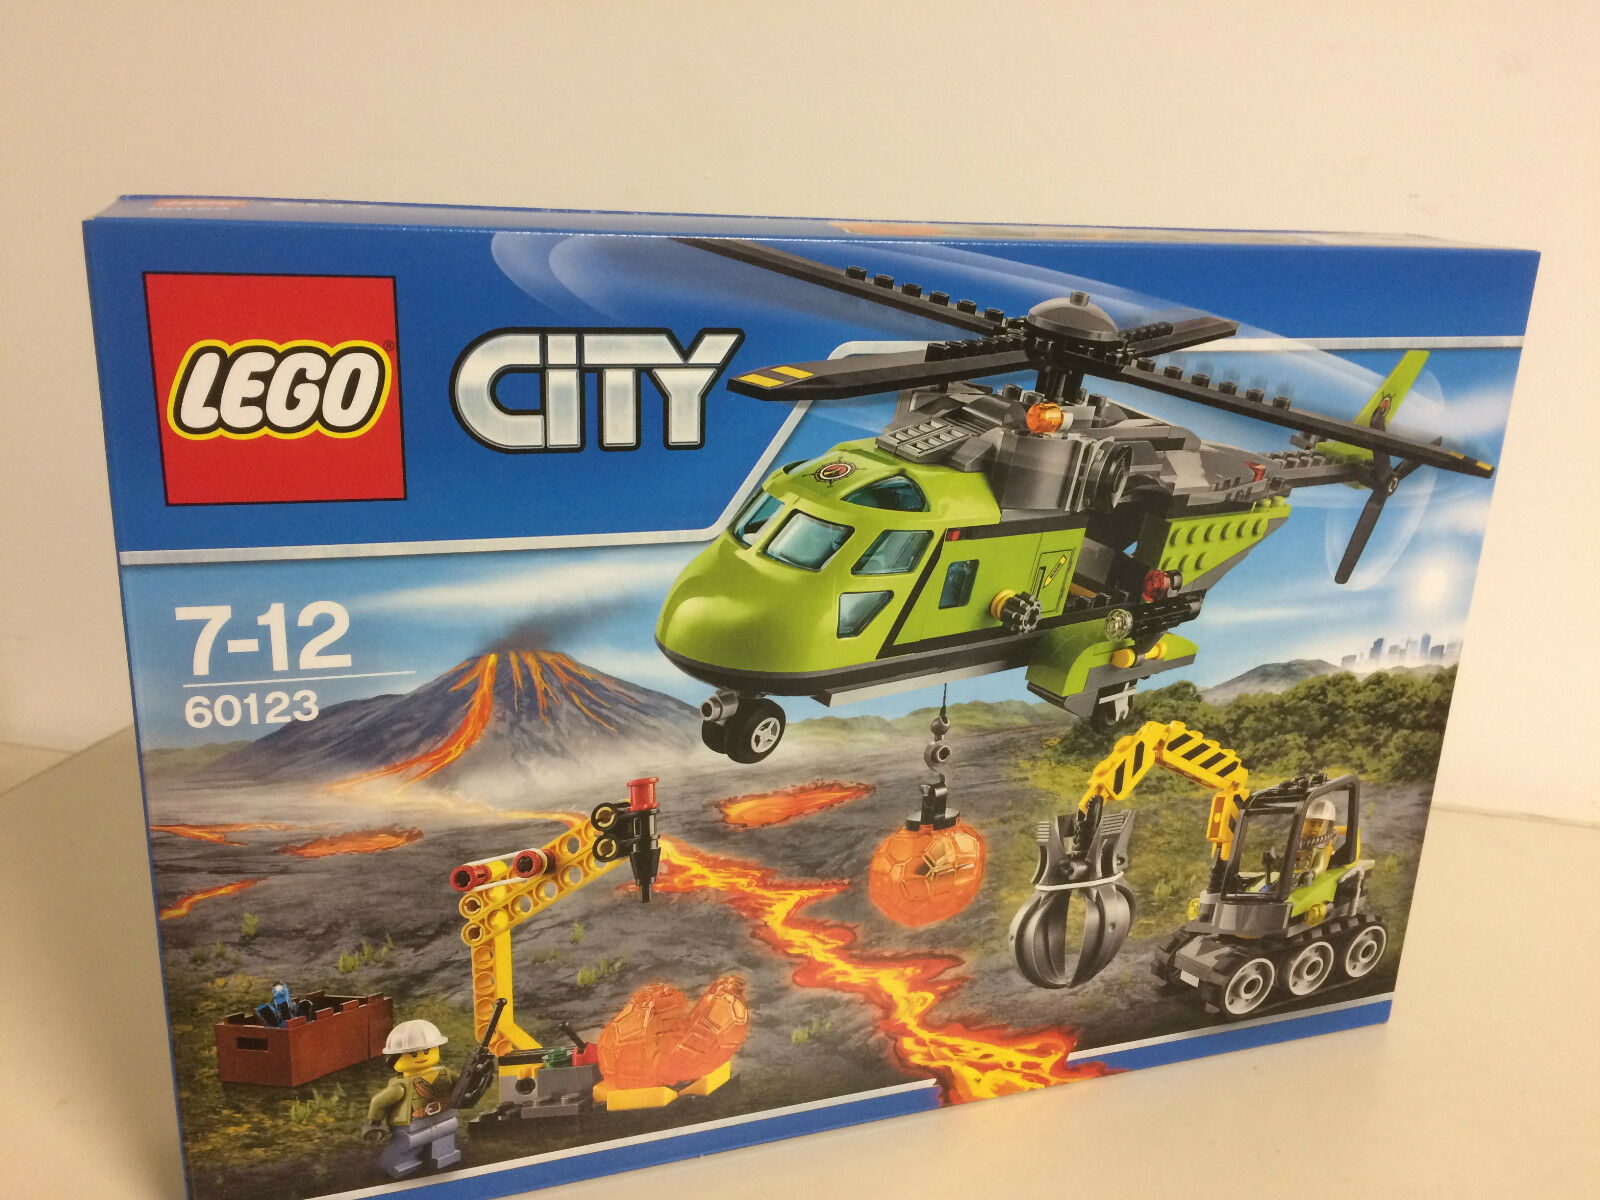 LEGO CITY 60123  VOLCANO SUPPLY HELICOPTER new Nuevo NIB with 3 minifigures